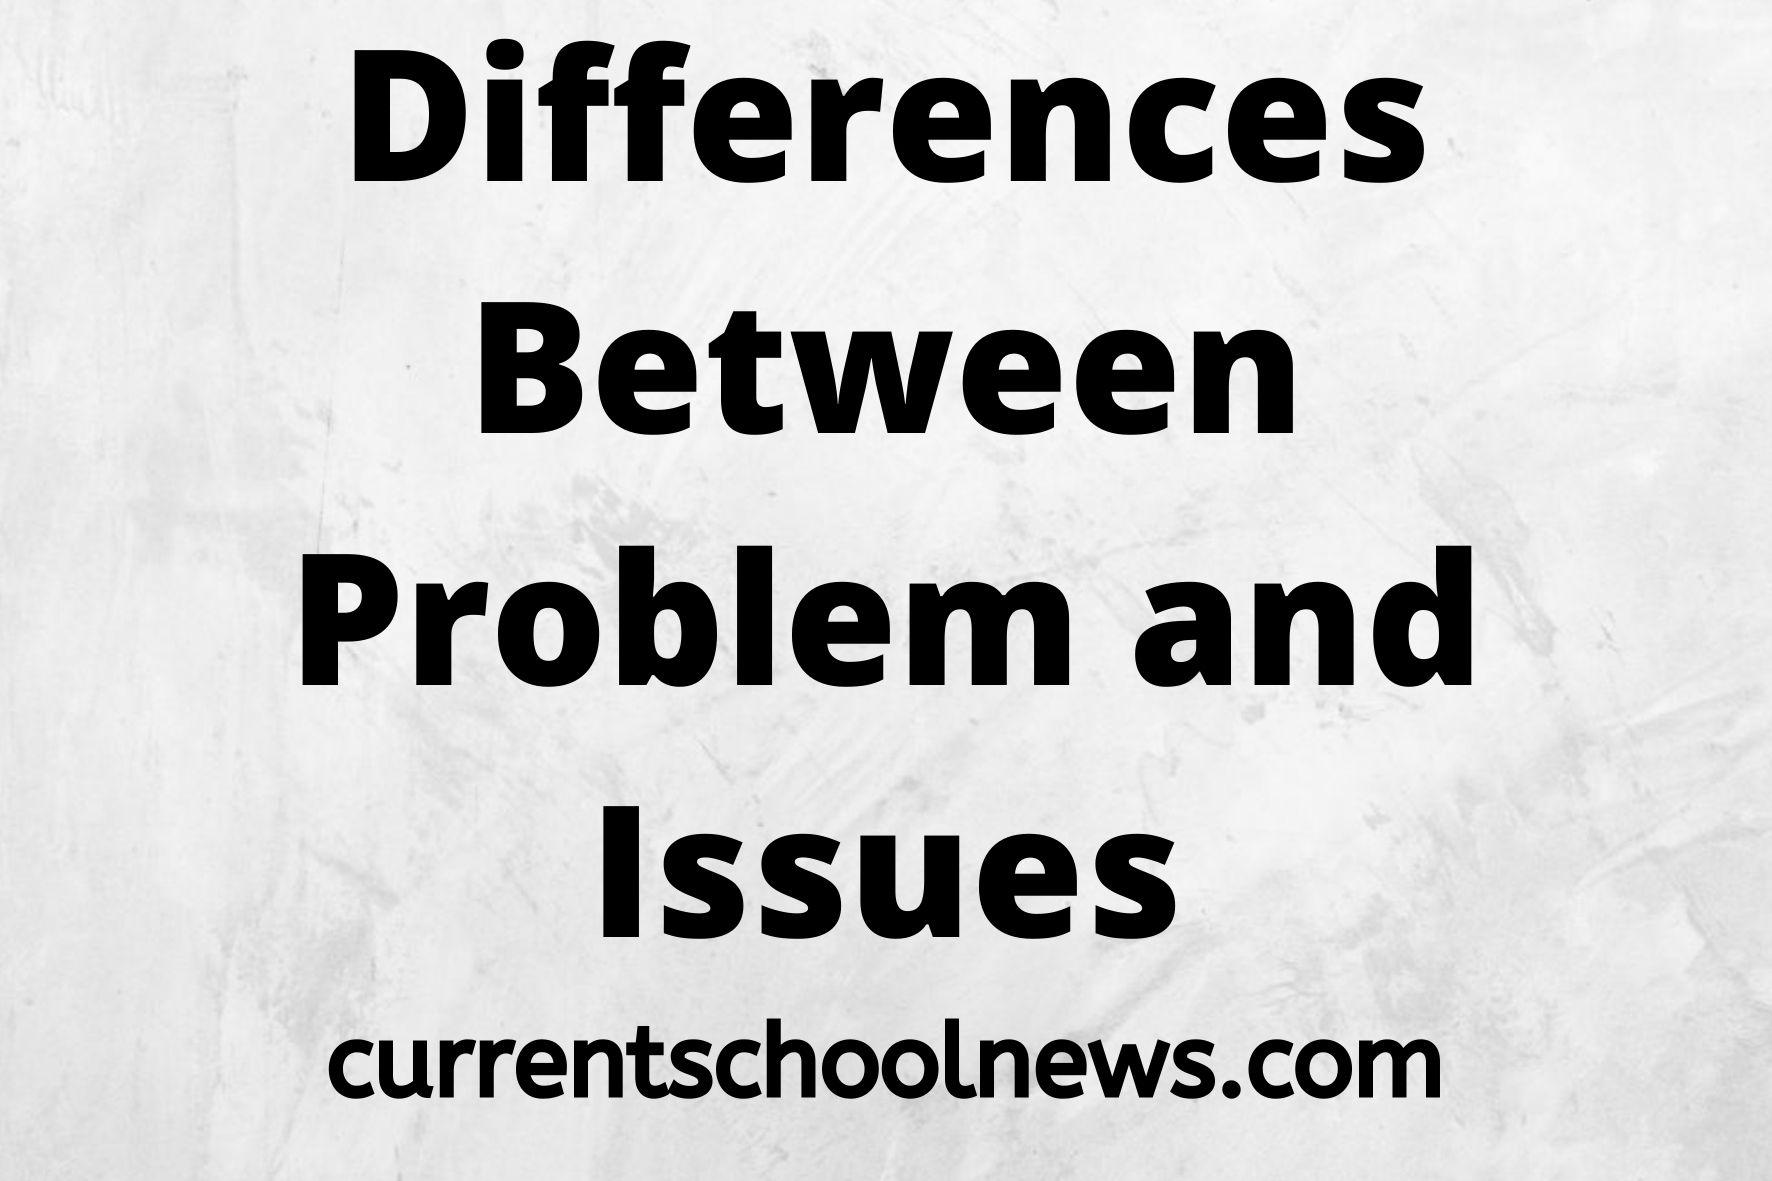 10 Significant Differences Between Problem And Issues